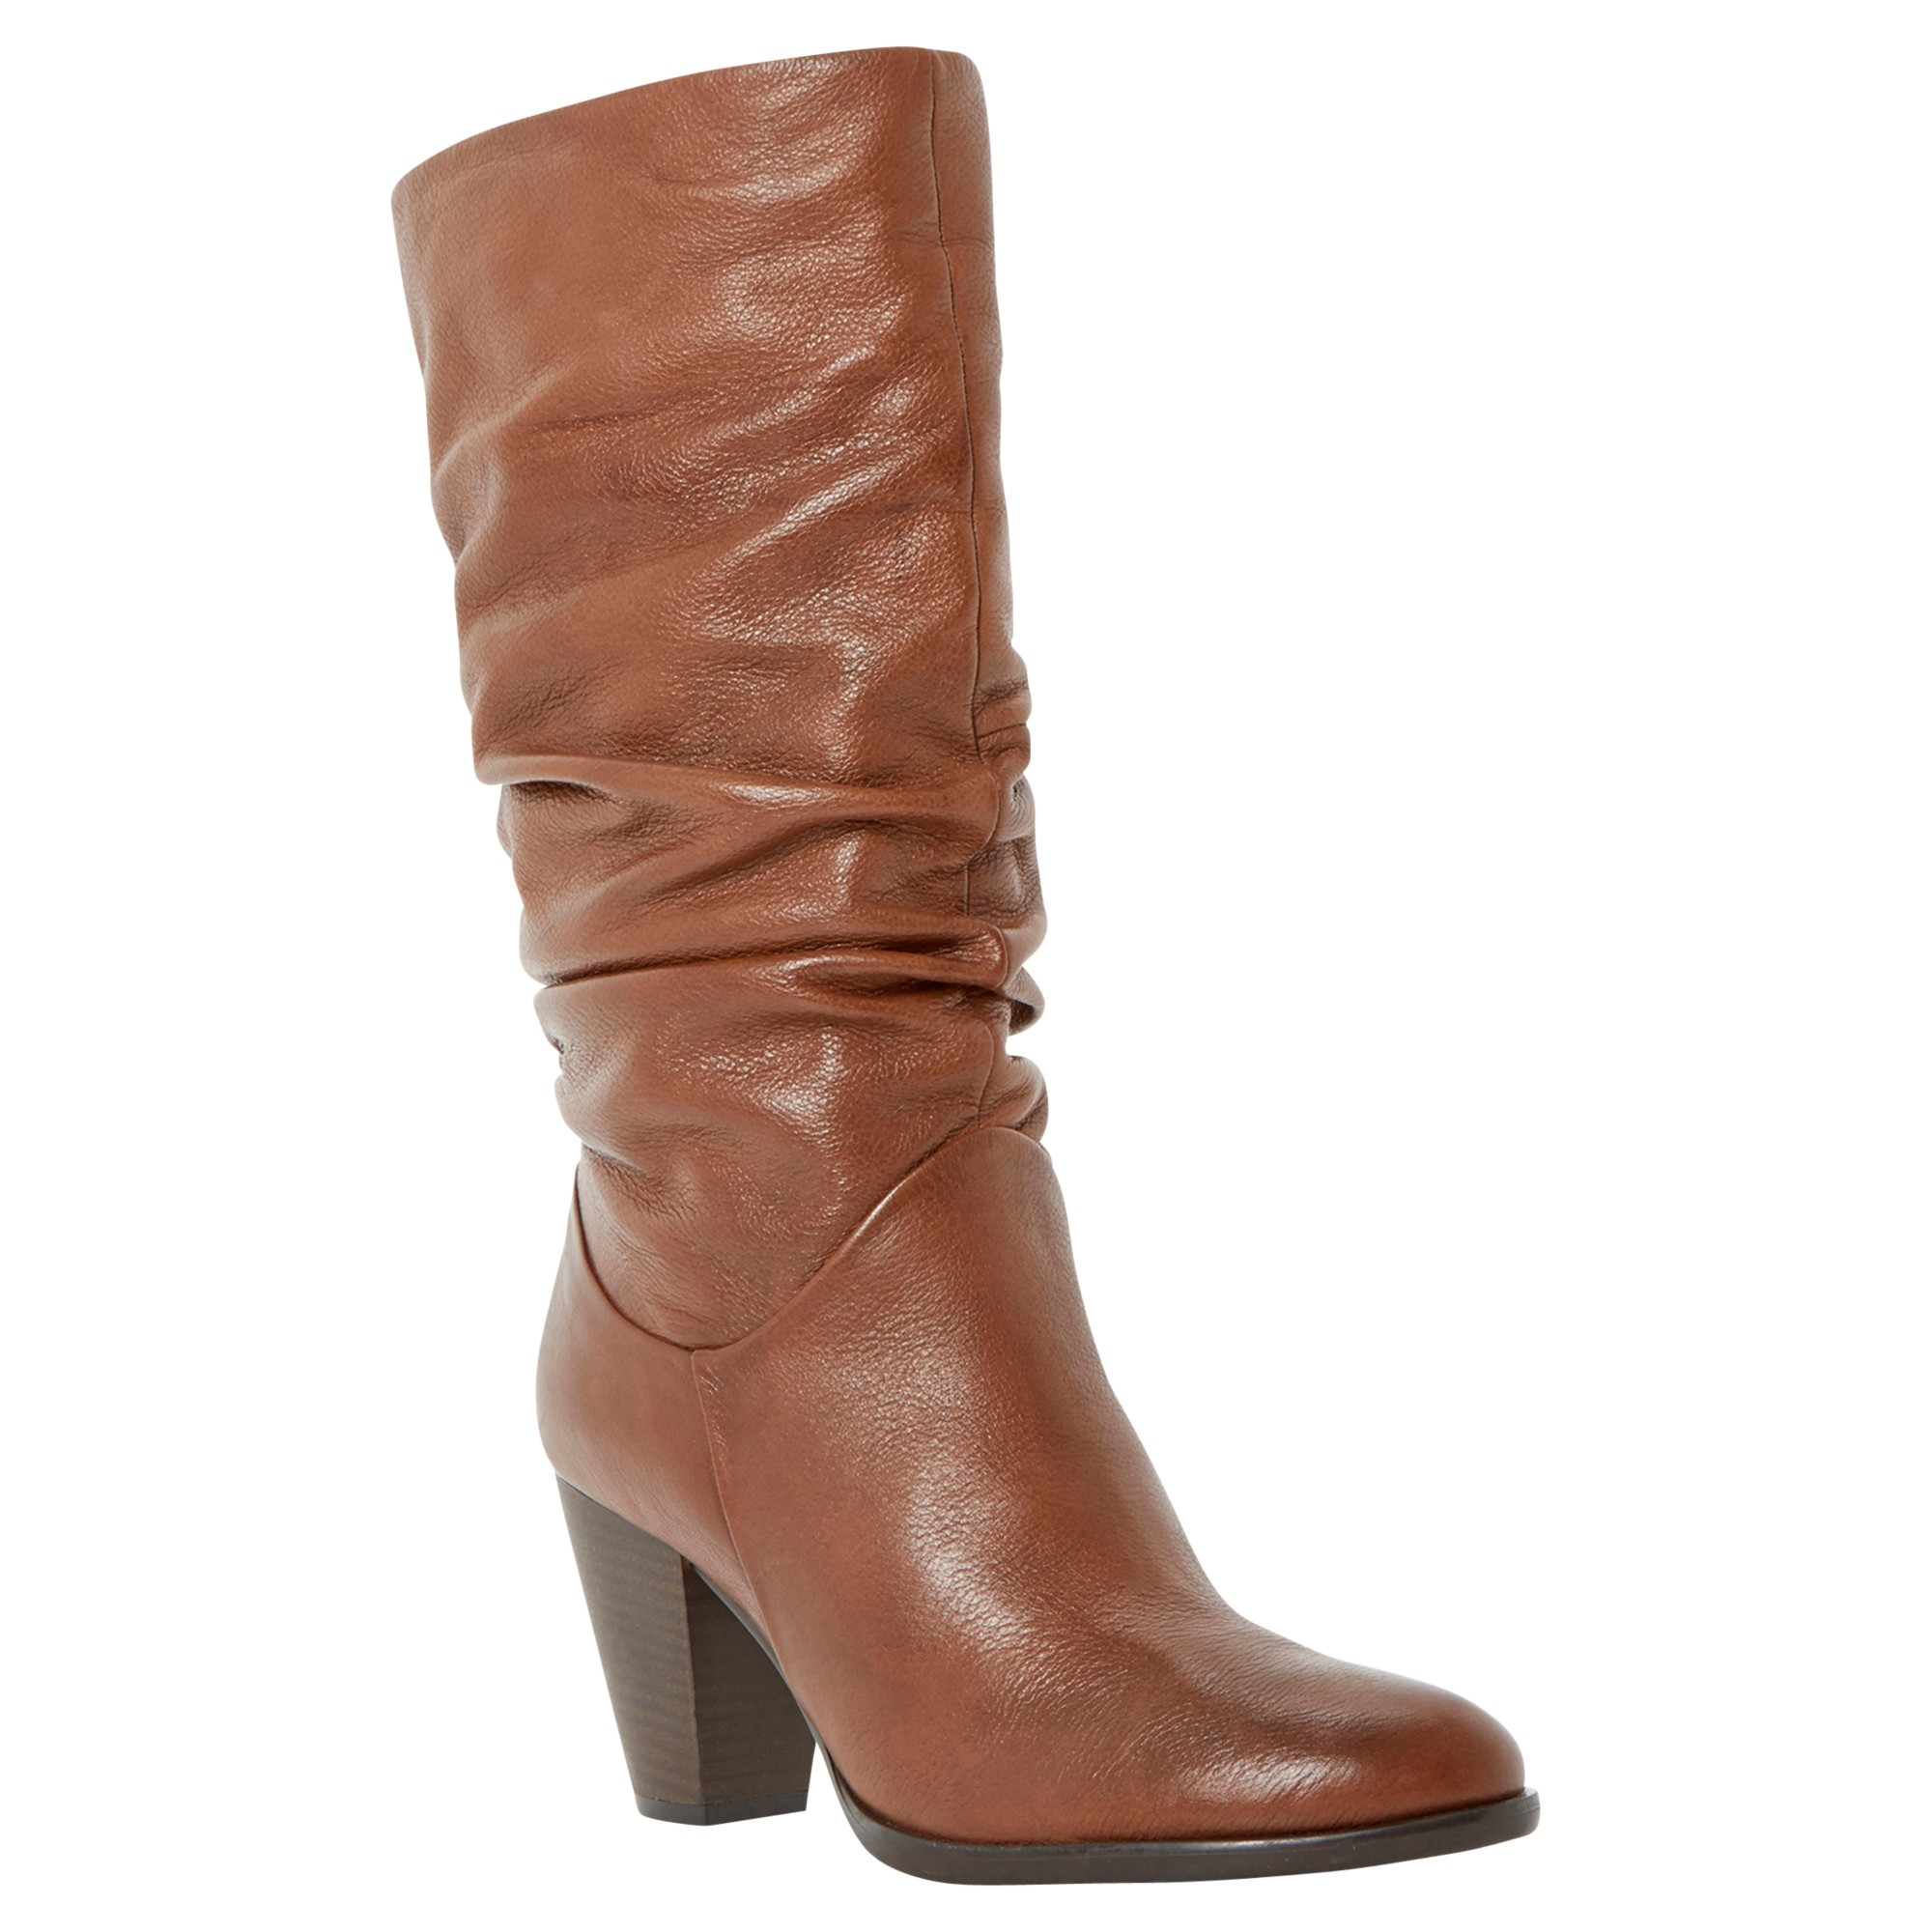 Dune Raddle Leather High Heel Calf Boots in Brown